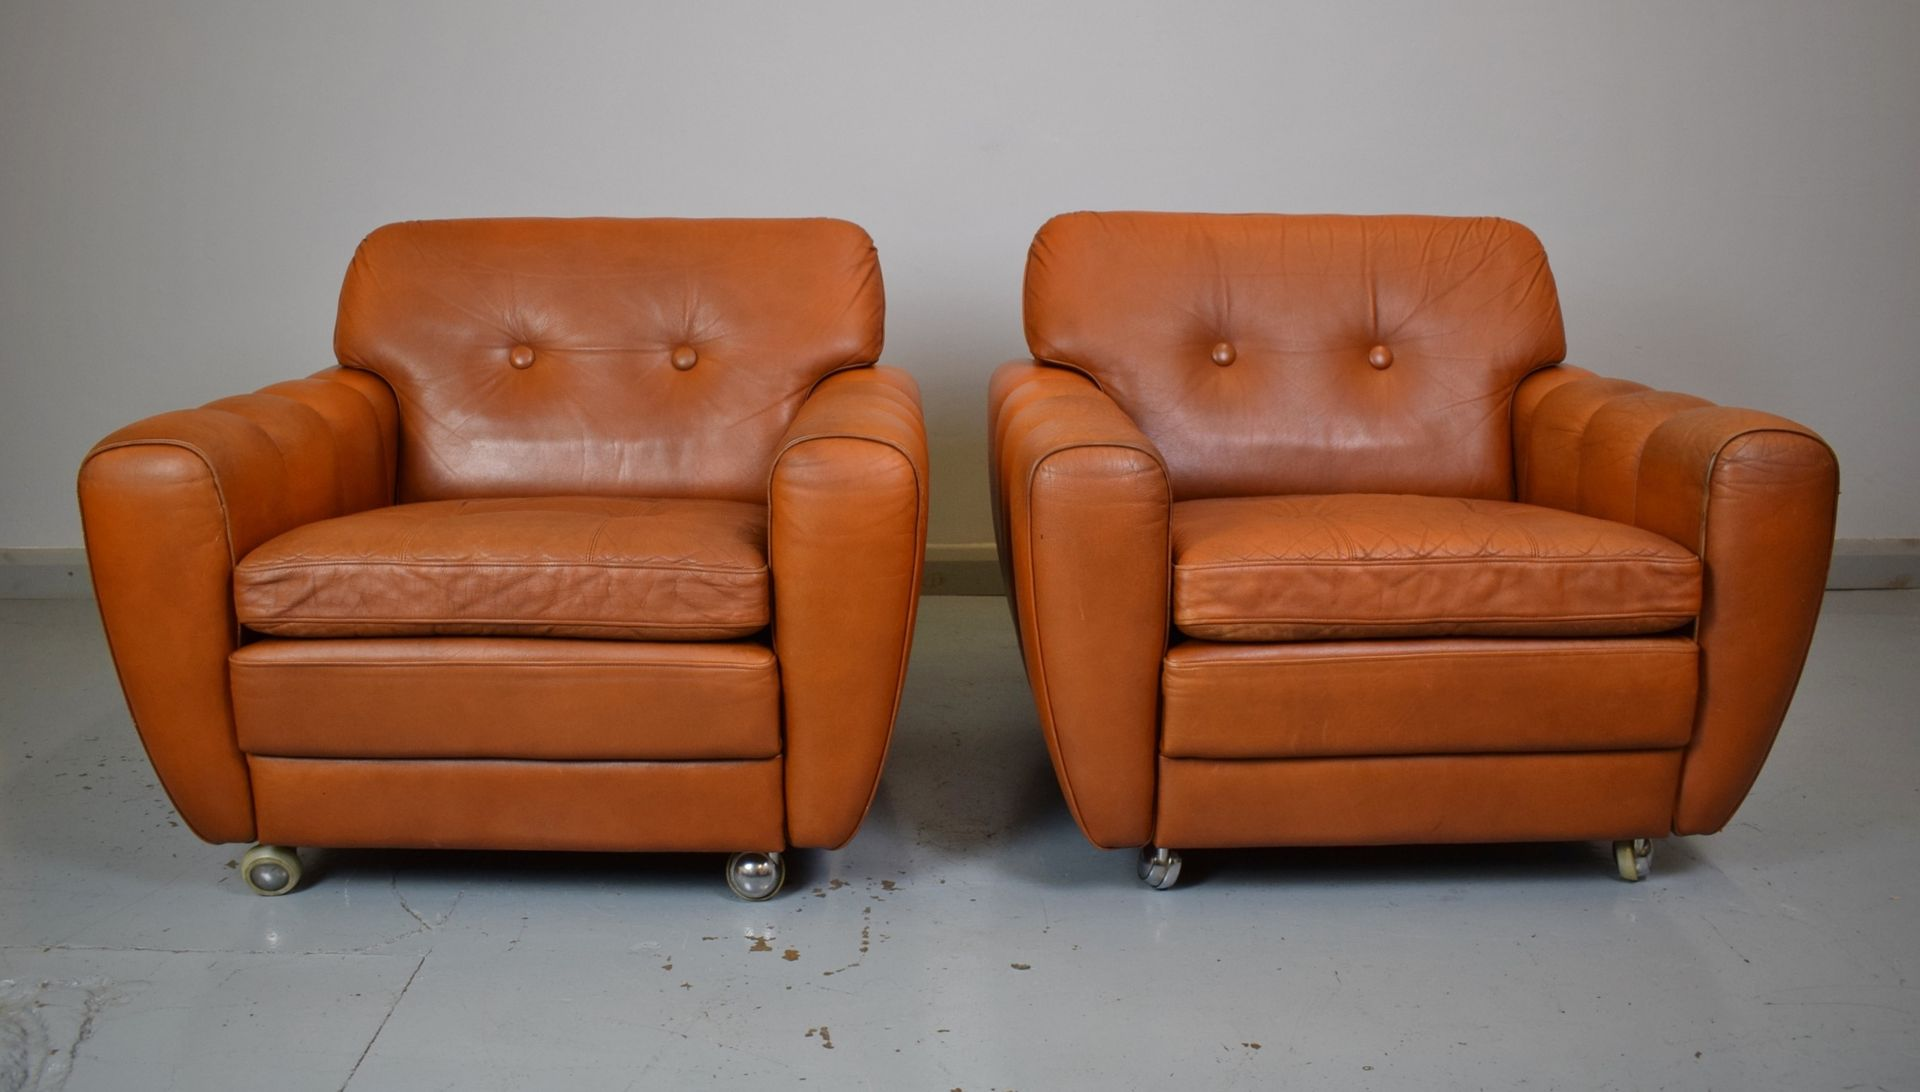 Danish Tan Leather Club Chairs by Svend Skipper for Skippers